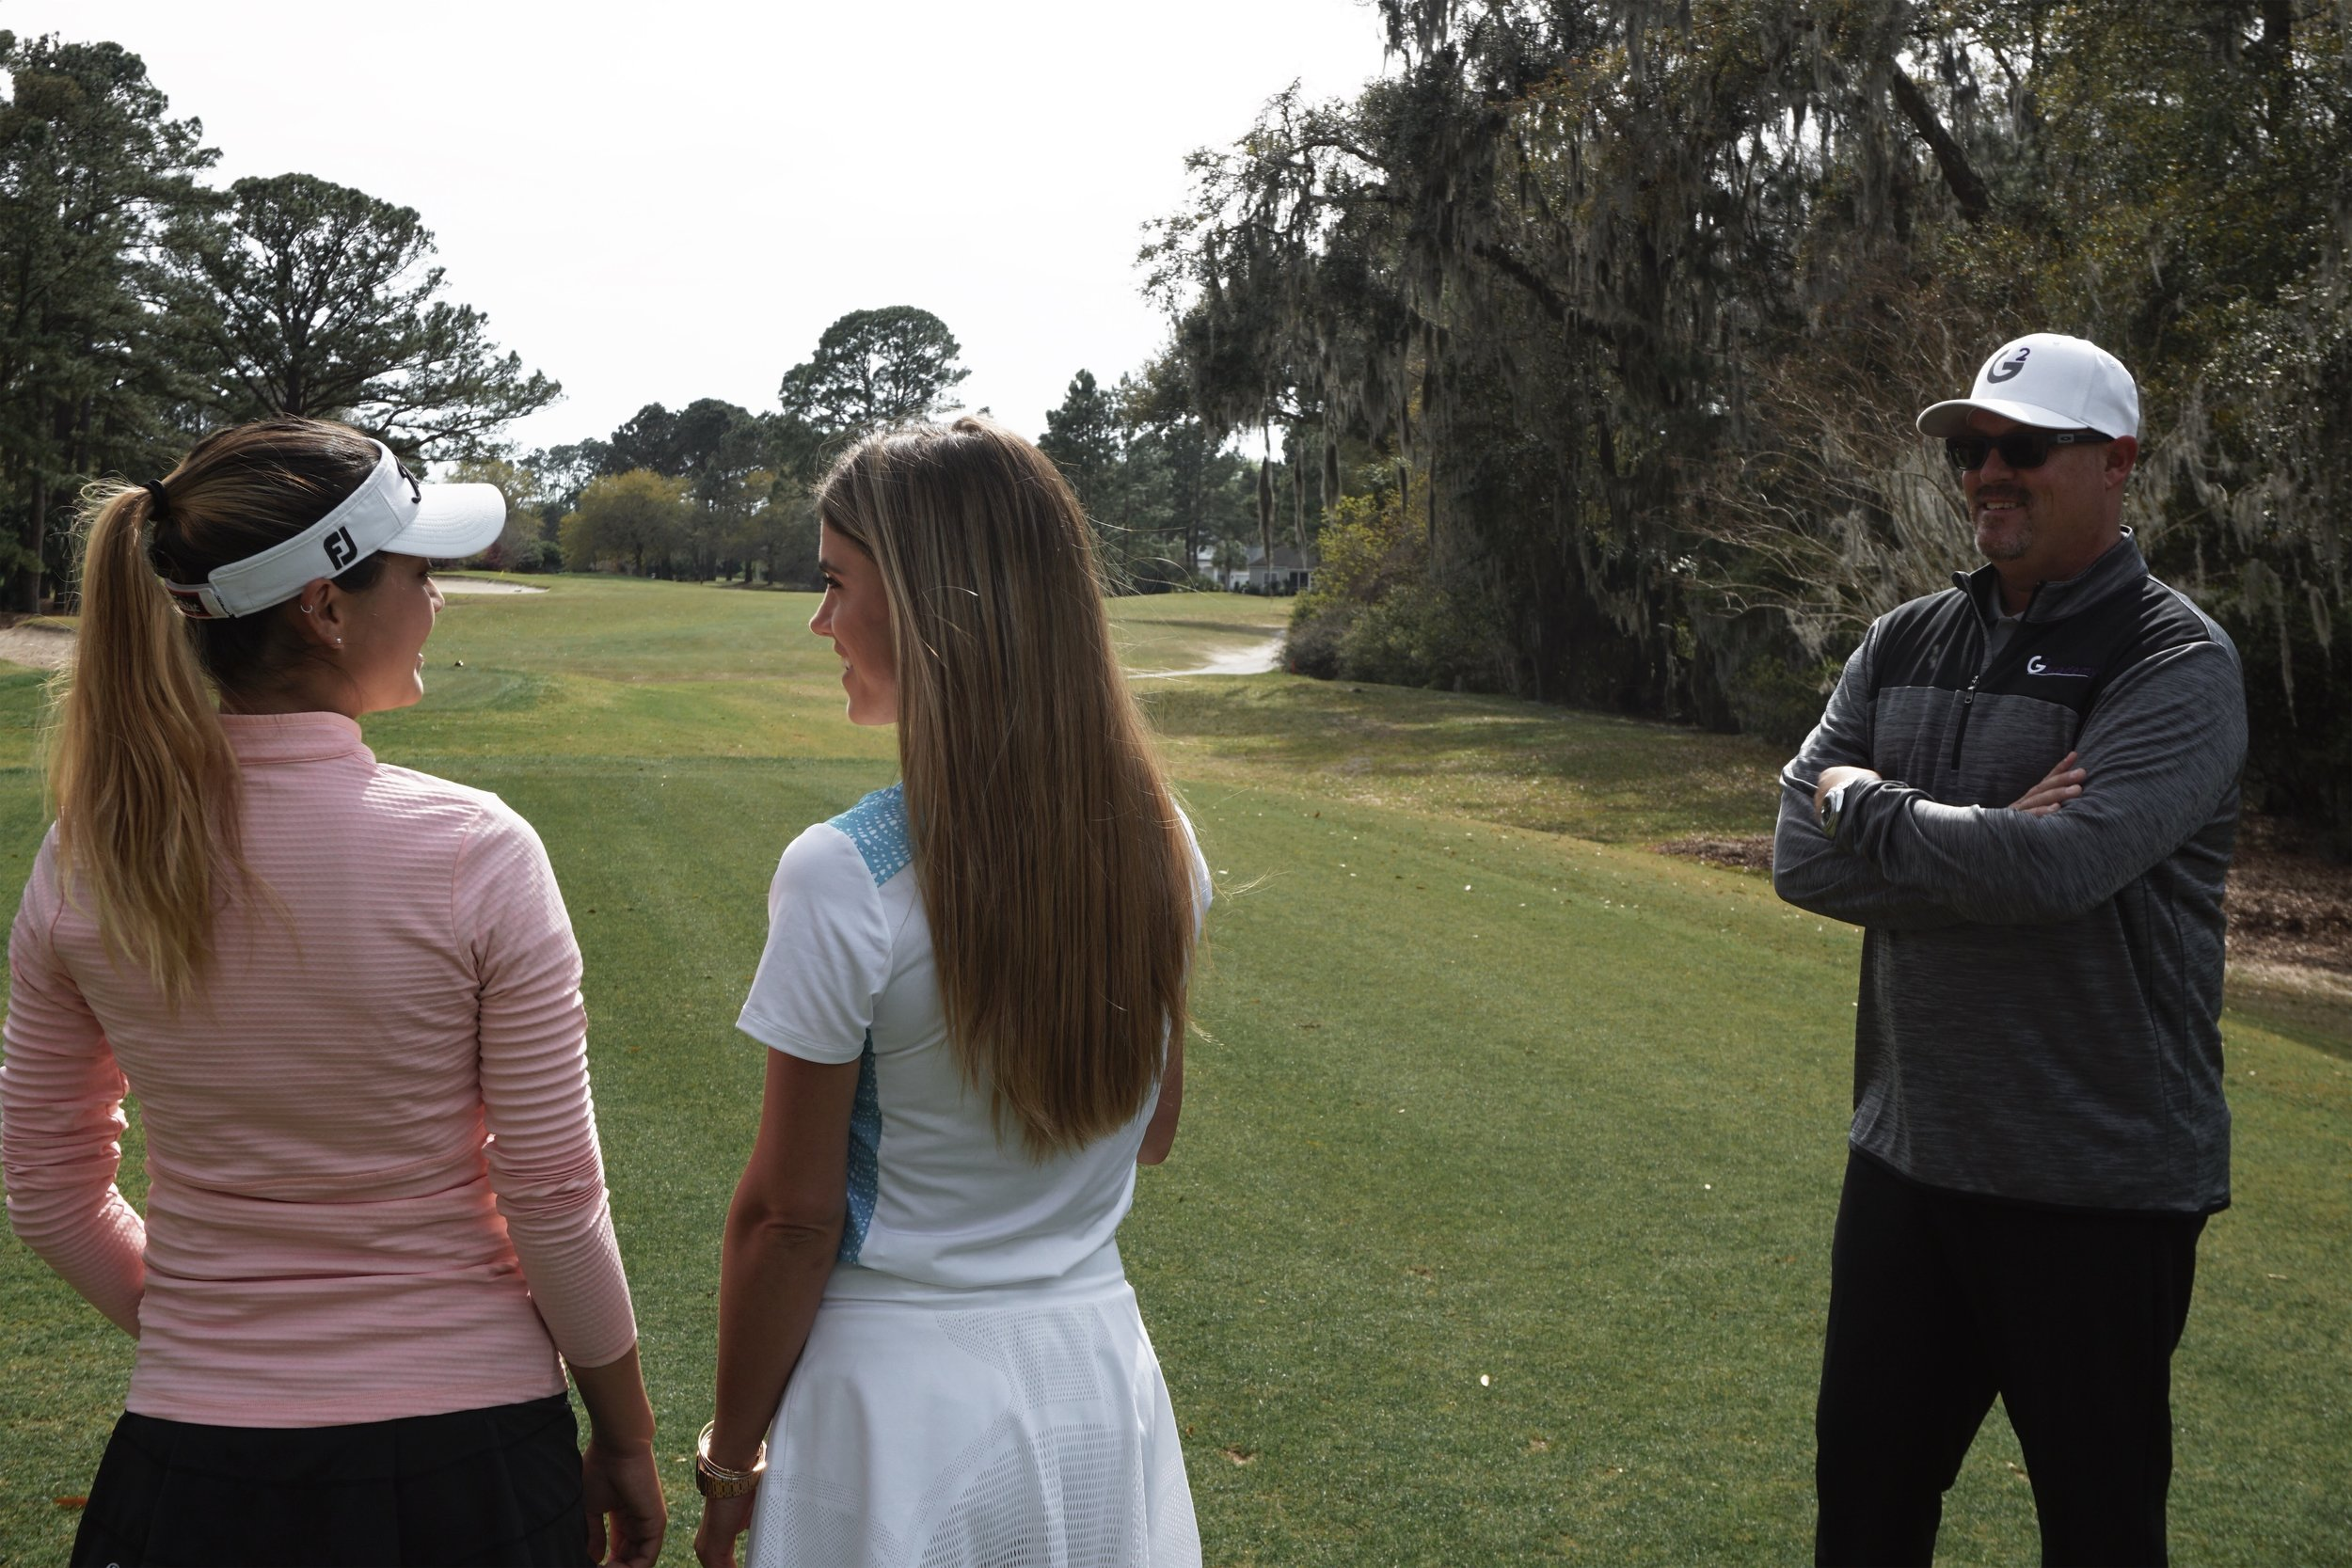 My partnership with G2 Academy, the ALL GIRLS only boarding school in the US, fills me with joy. I am very proud to be selected as part of the team and to have the opportunity to serve as a mentor to these young girls. To learn more about the Academy and the golf training  CLICK HERE.